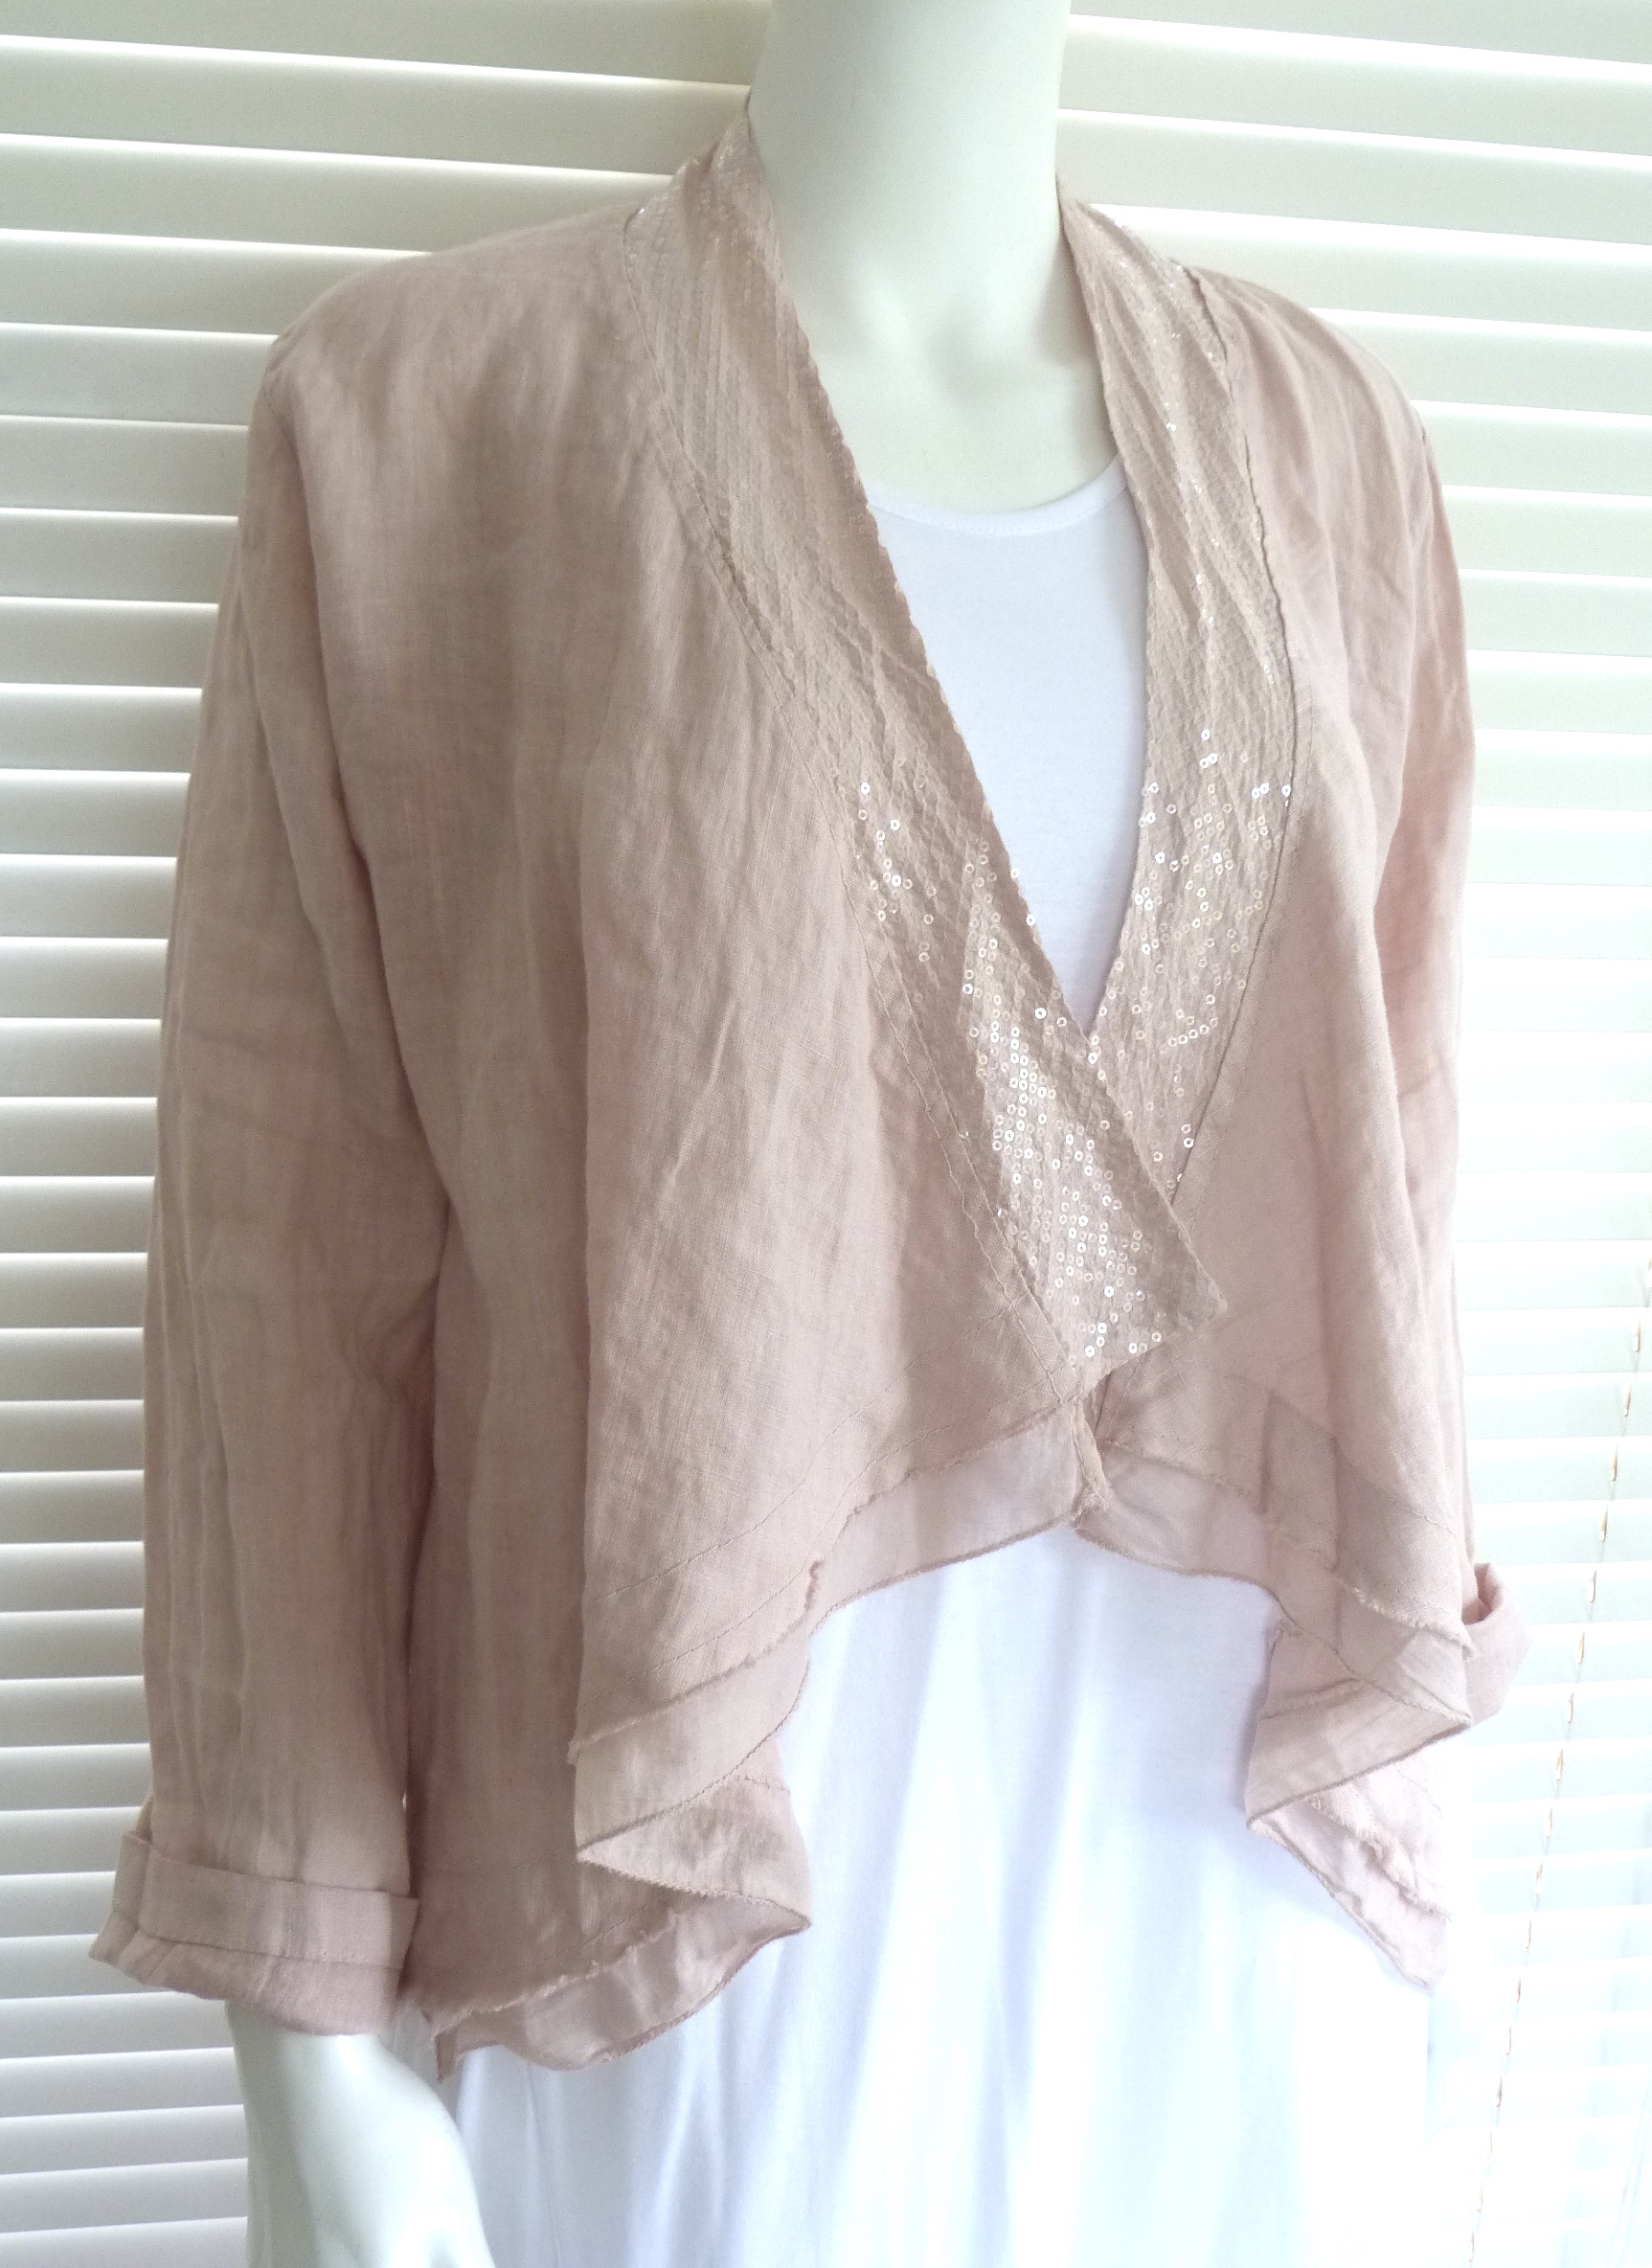 Fabulous Italian Linen Waterfall Style Jacket With Sequin Trim Sophie Boutiquej2s